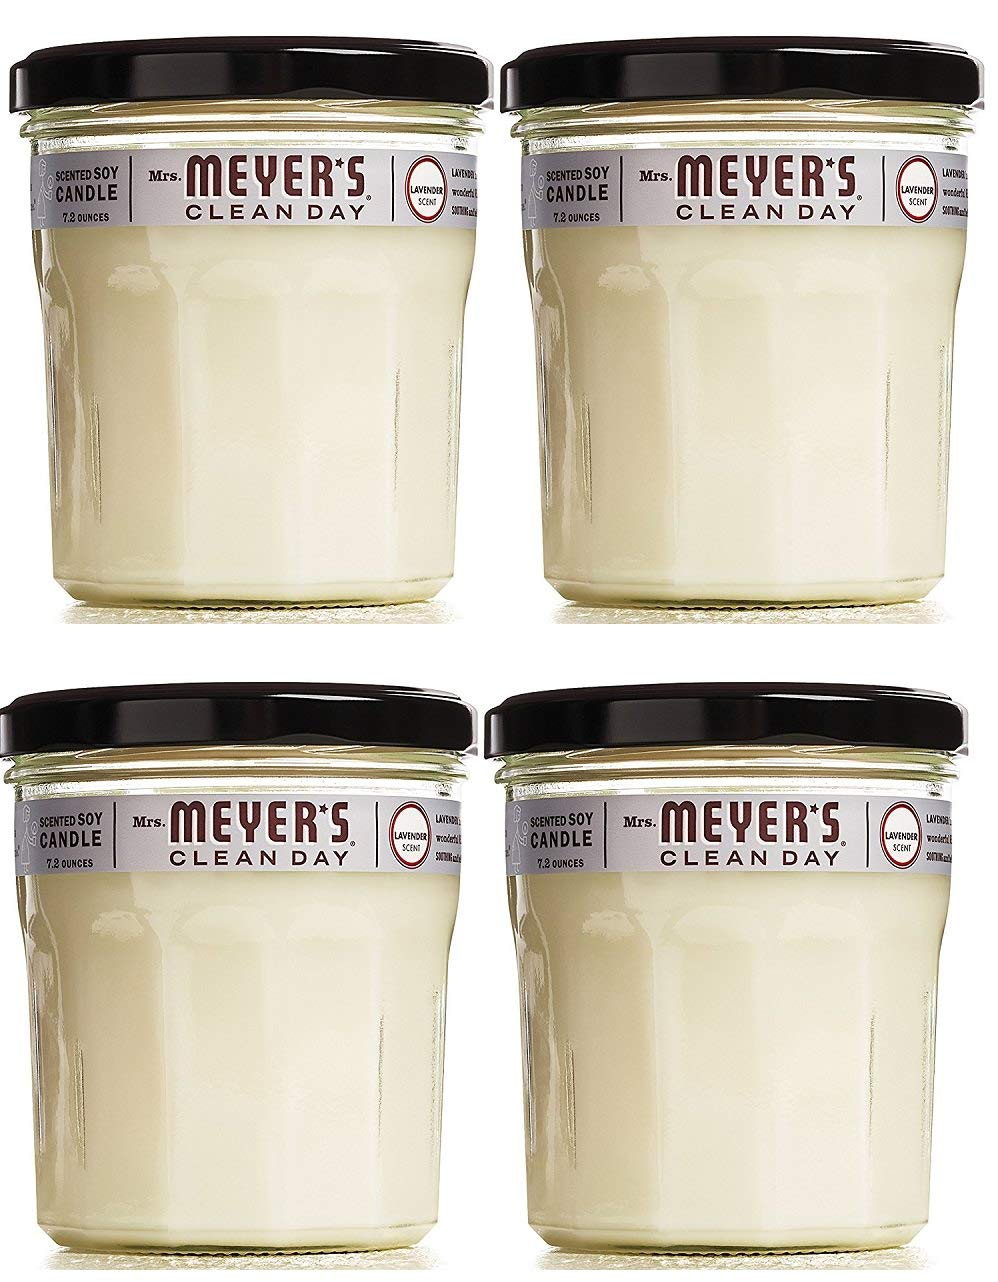 Scented Soy Candle, Large Glass, Lavender, 7.2 oz, 4 Count by Mrs. Meyer's Clean Day (Image #1)